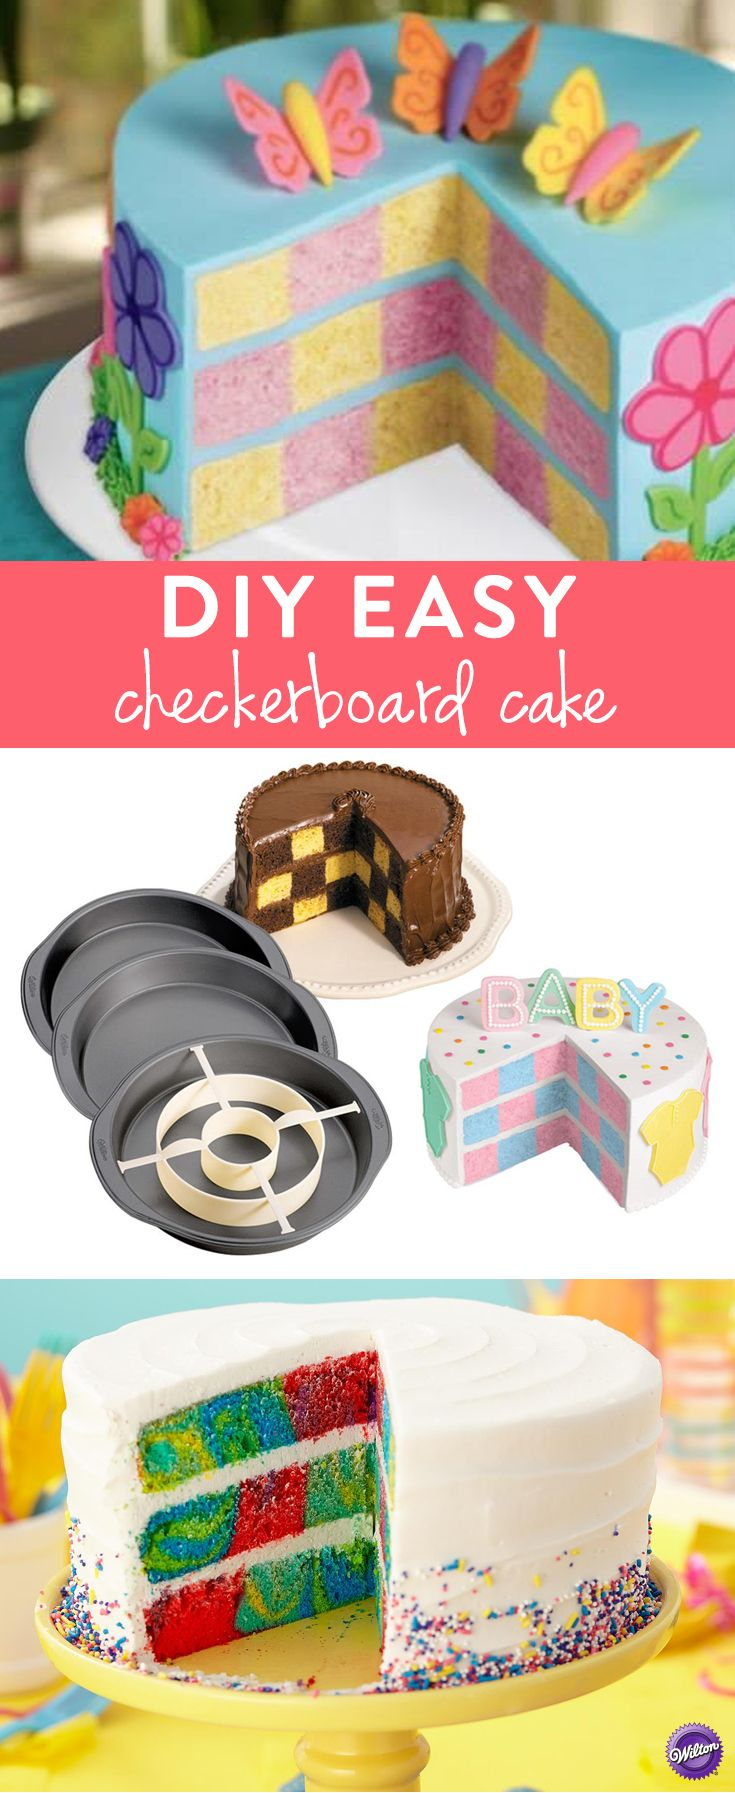 Round Checkerboard Cake Pan Set 4 Piece Checkerboard Cake Cake Pan Set Cake